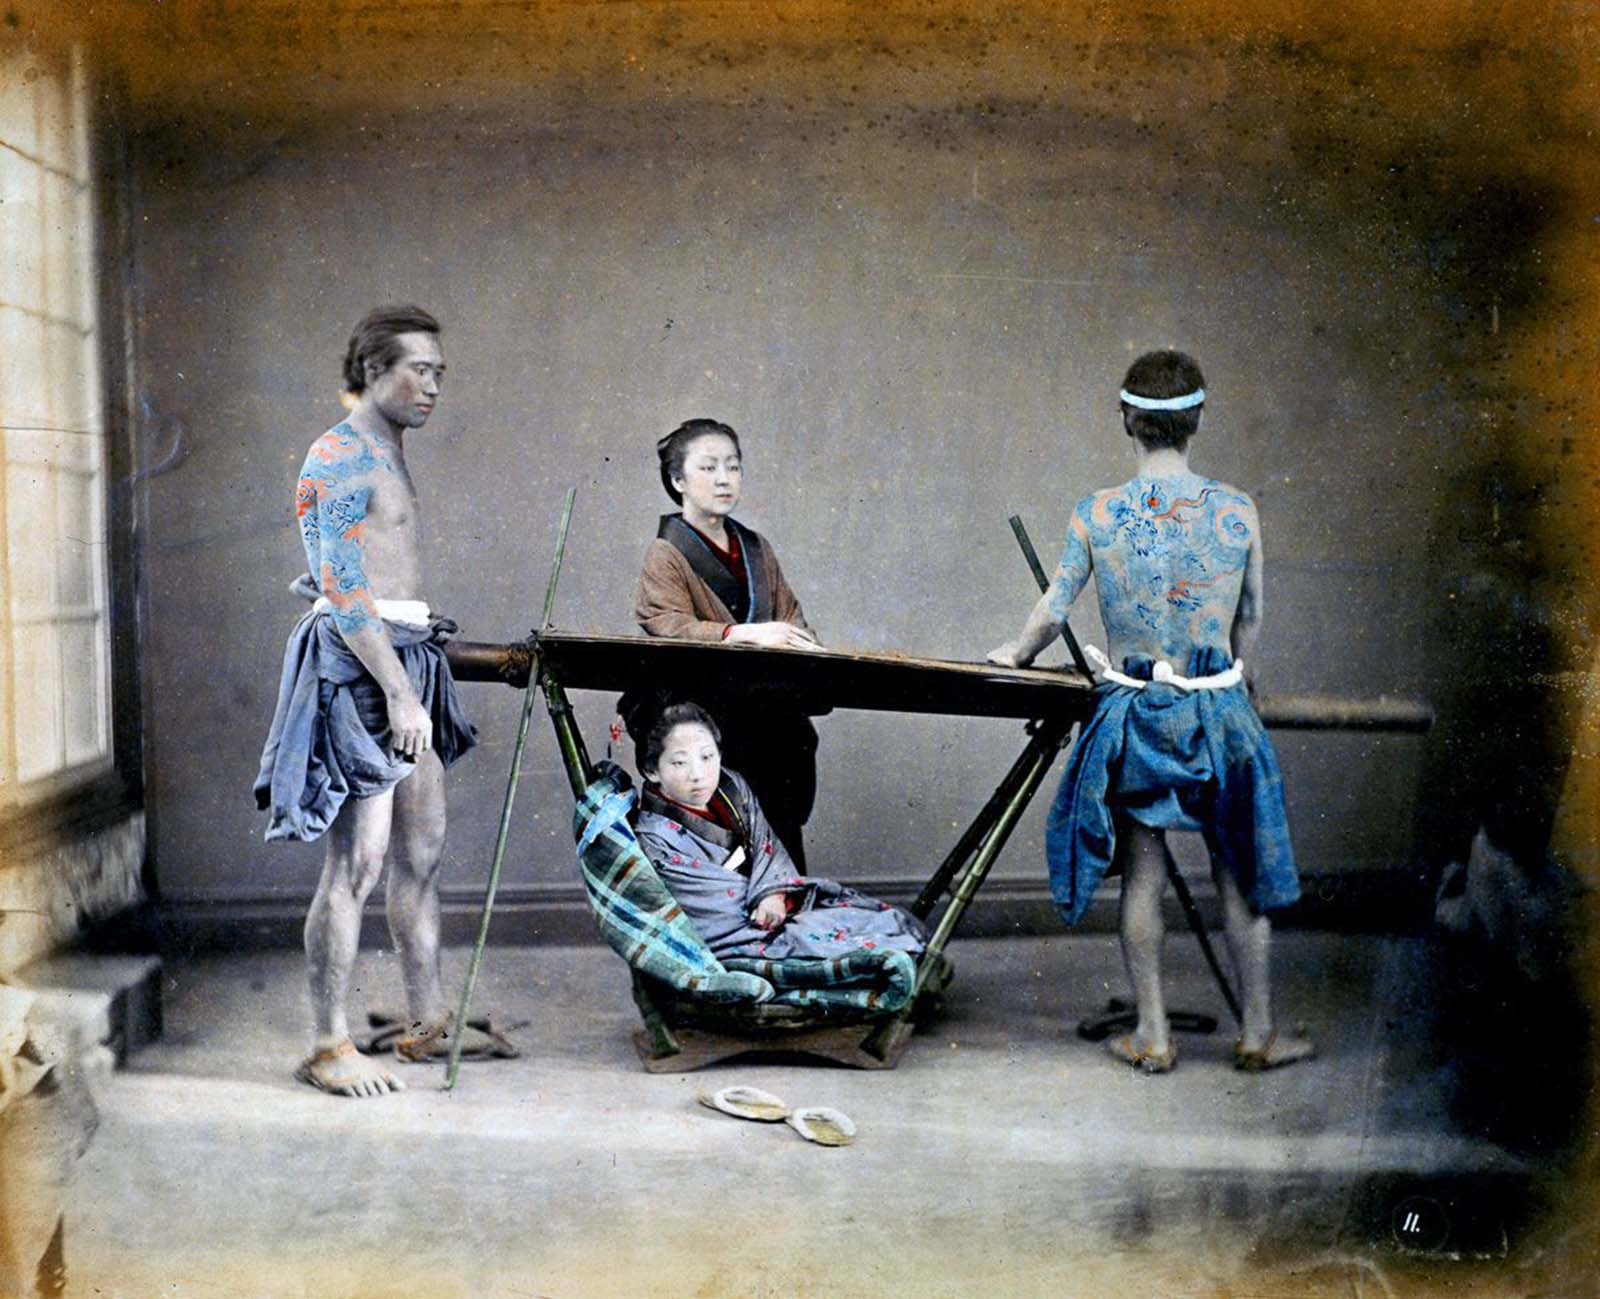 Two tattooed kago bearers prepare to lift a woman in a kago, or sedan chair. 1865.